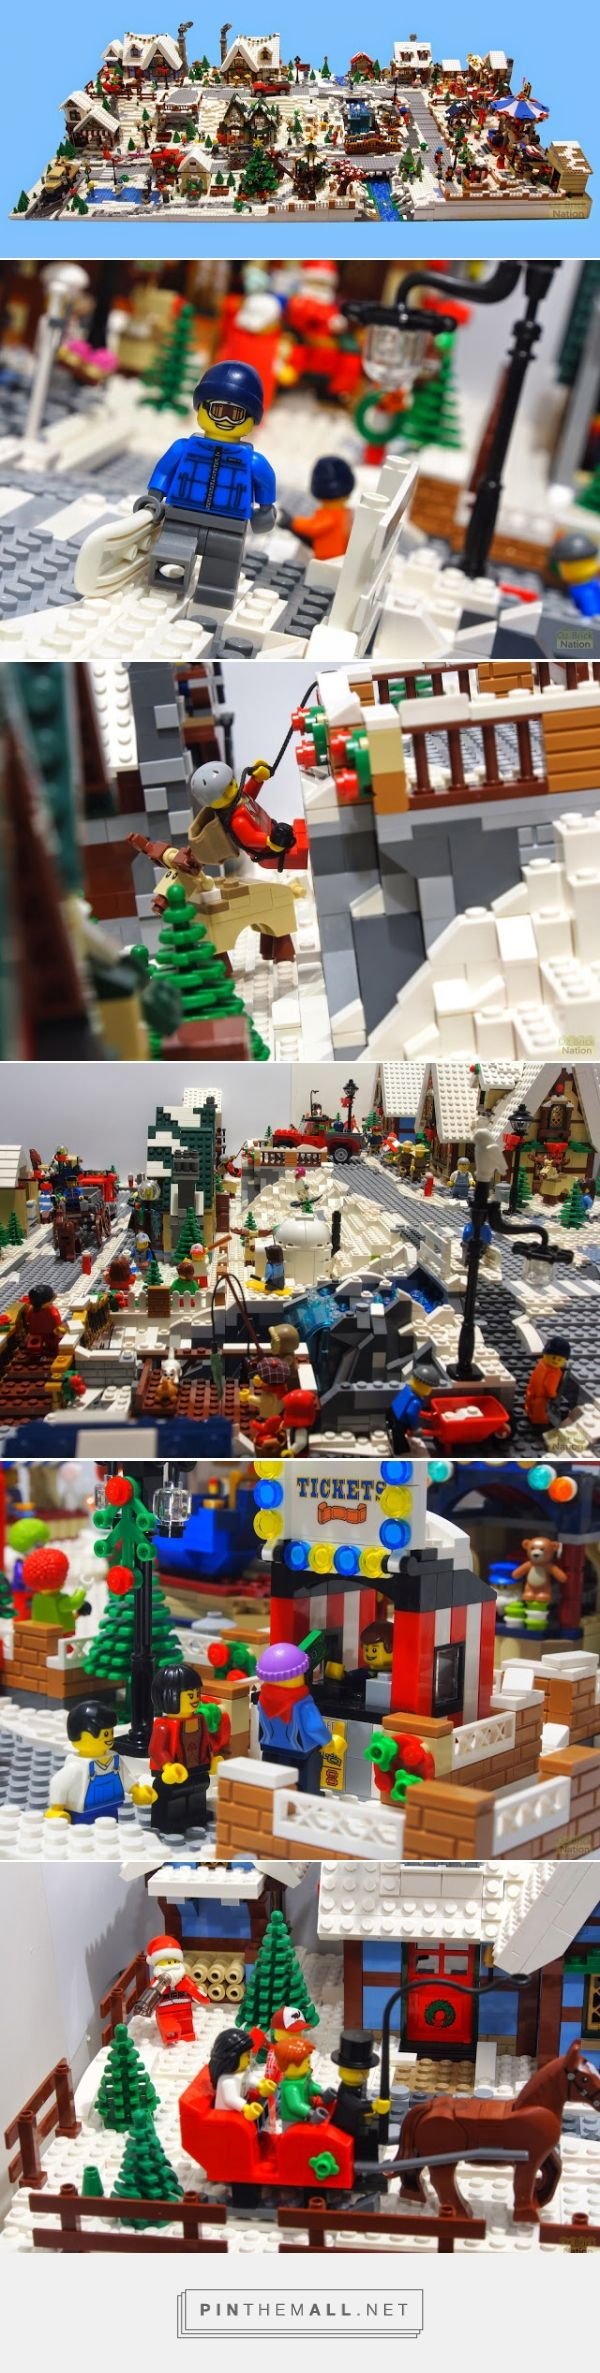 Oz Brick Nation: Our LEGO Winter Village MOC Display. - created via http://pinthemall.net